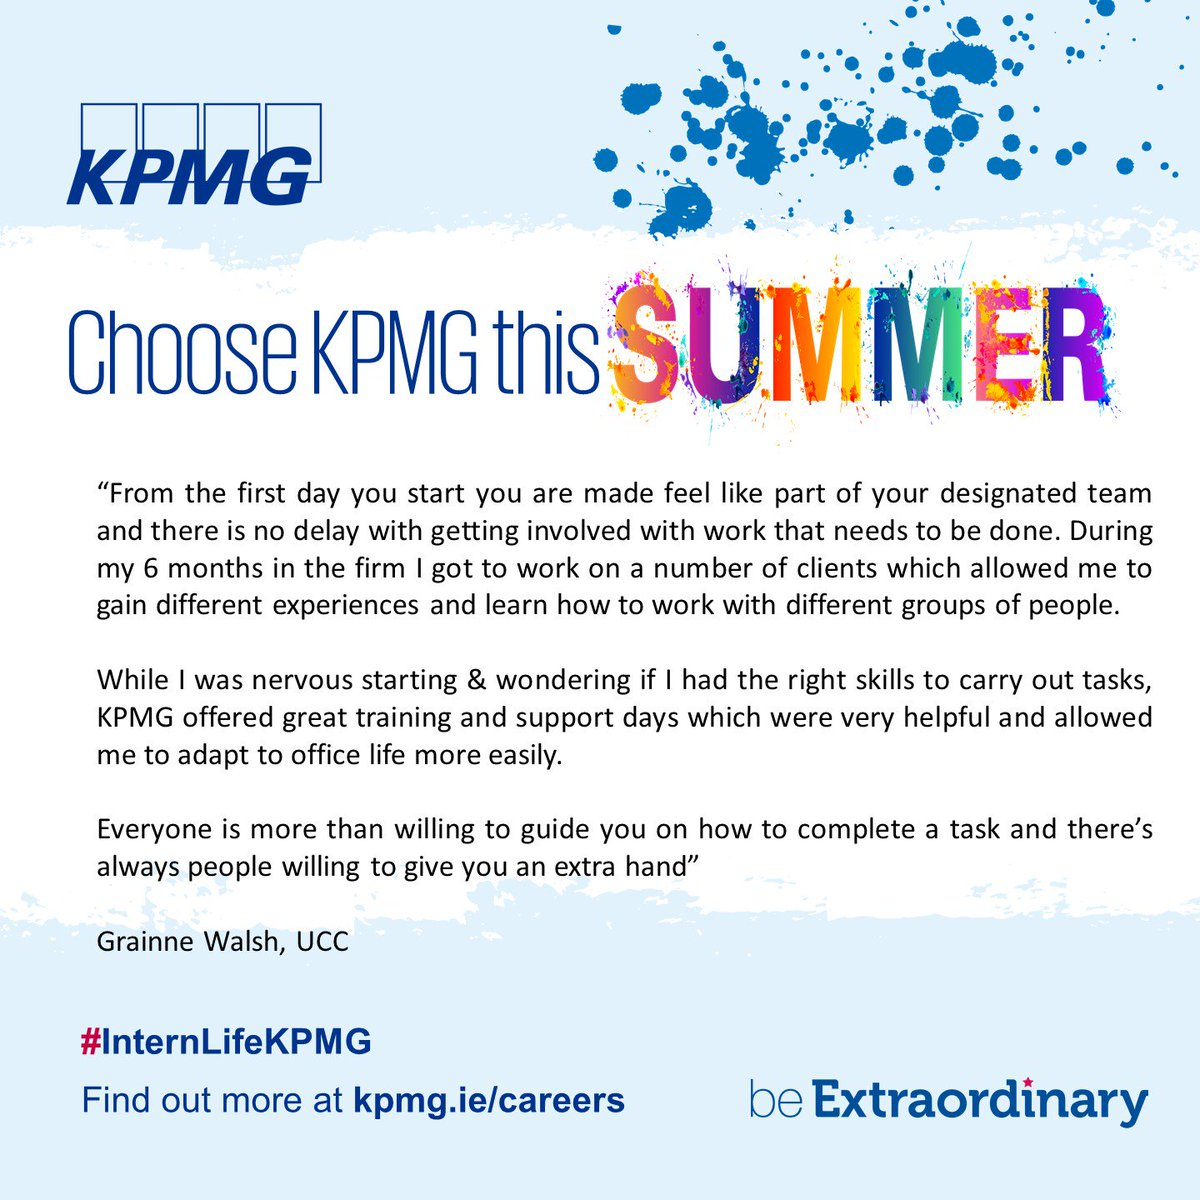 KPMG Careers Ireland on Twitter: